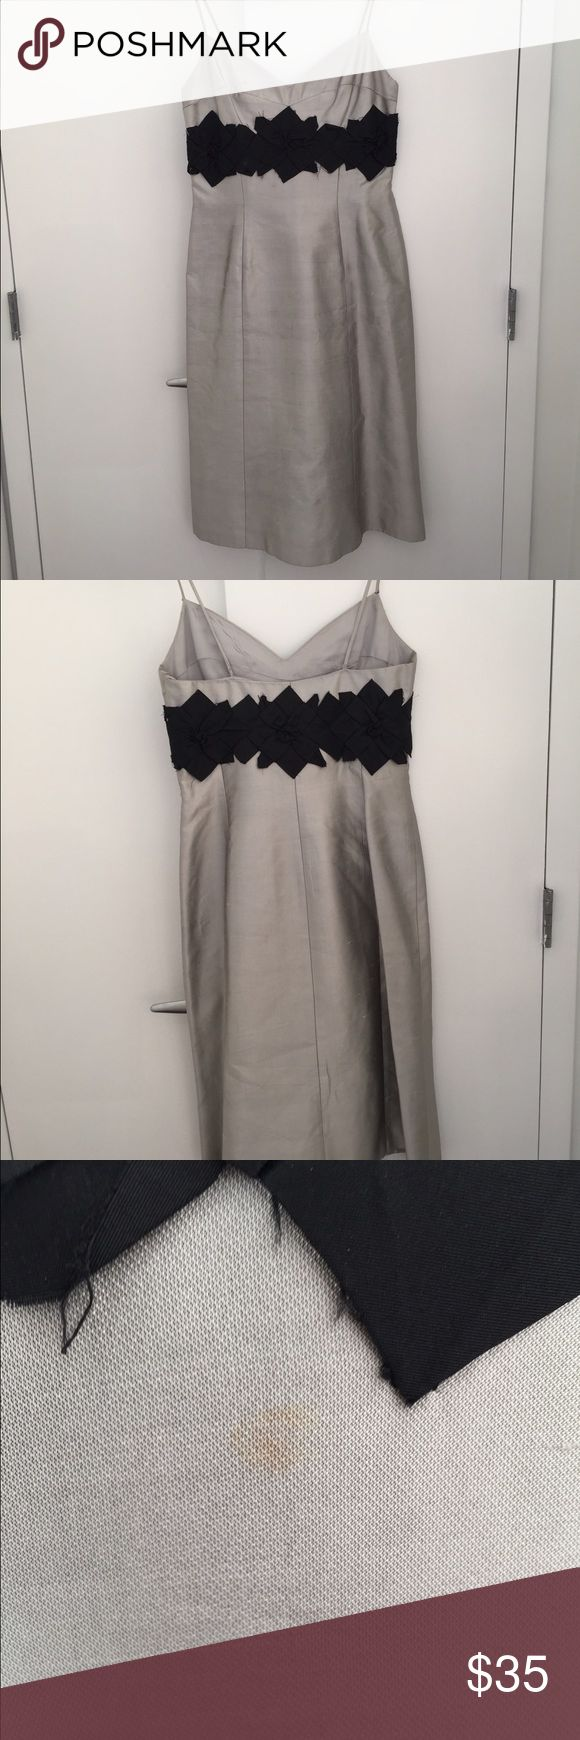 Silver and Black Raw Silk Kay Unger Dress This dress is gorgeous and fits perfectly. There are a few stains that a dry cleaner can remove. The length is just below the knee. Kay Unger Dresses Midi